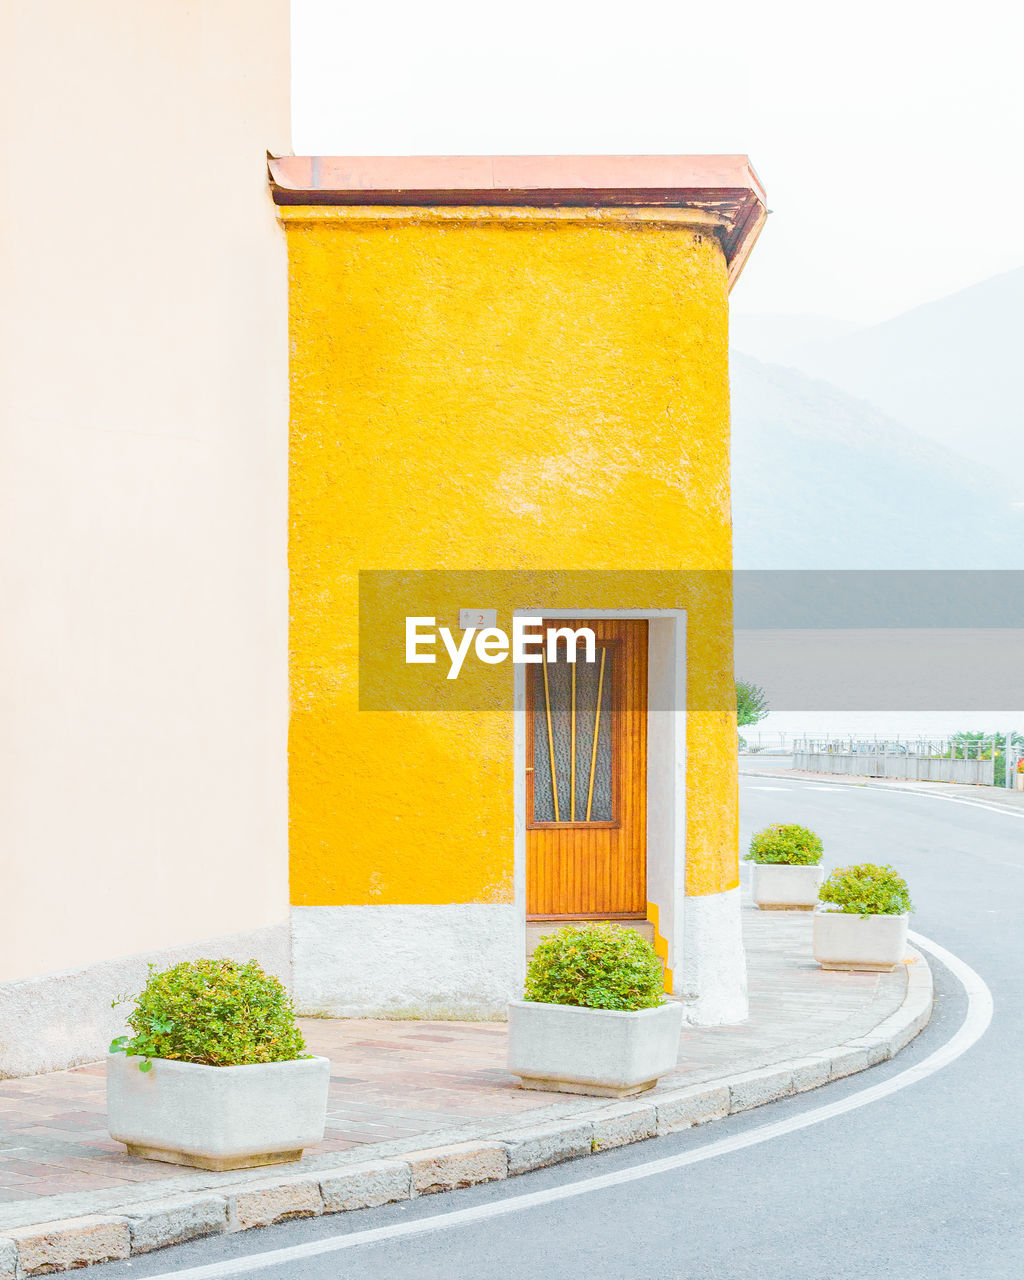 built structure, architecture, no people, yellow, building exterior, day, nature, potted plant, plant, building, outdoors, close-up, wall - building feature, house, wall, freshness, window, healthy eating, orange color, sky